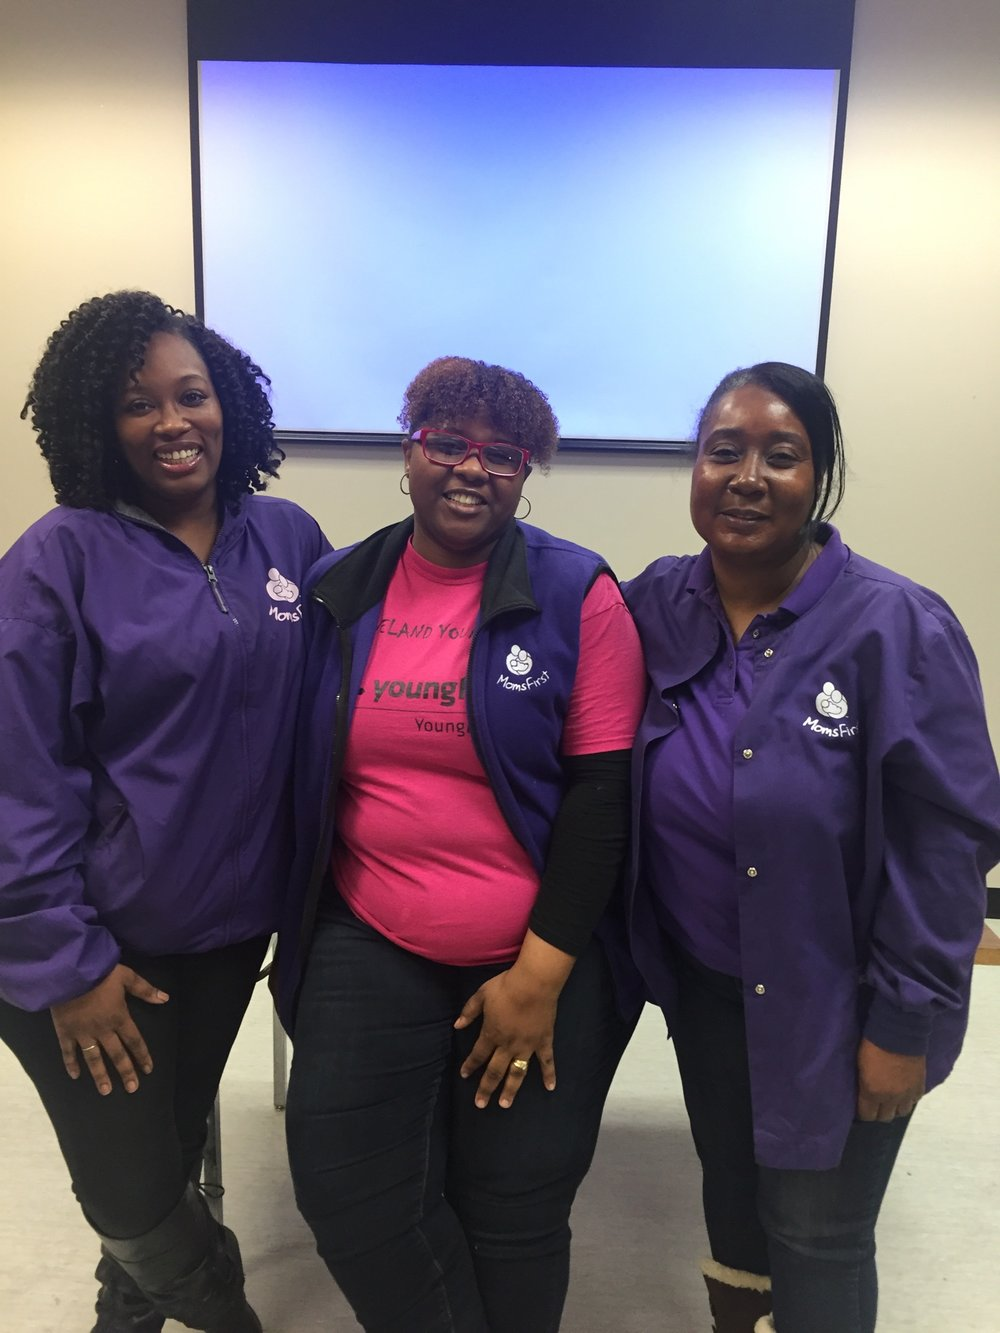 Candence Pinkard, LaTanisha Walker-White and Deedra Jackson. Ms. Jackson was Mrs. Walker-White's CHW and Mrs. Walker-White was Ms. Pinkard's CHW. As a remarkable testament of the success of the program, all three women are currently MomsFirst CHWs.